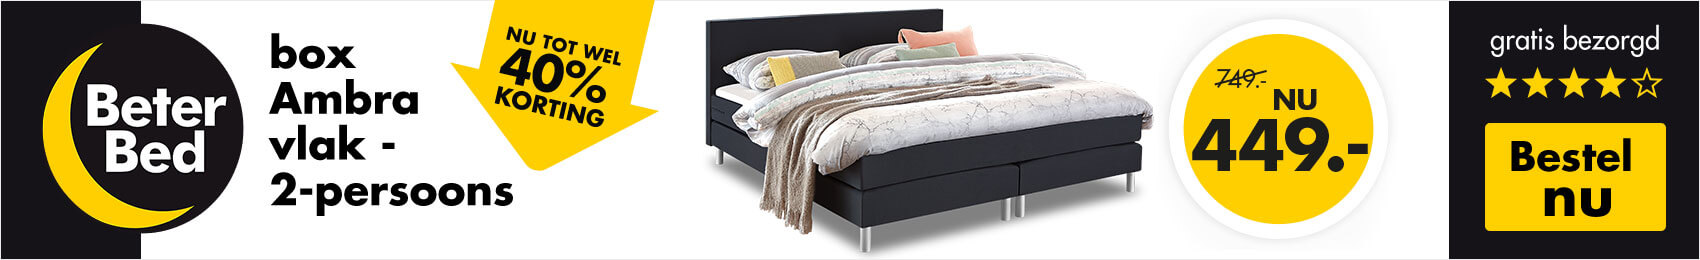 Boxsprings promotie Beter Bed